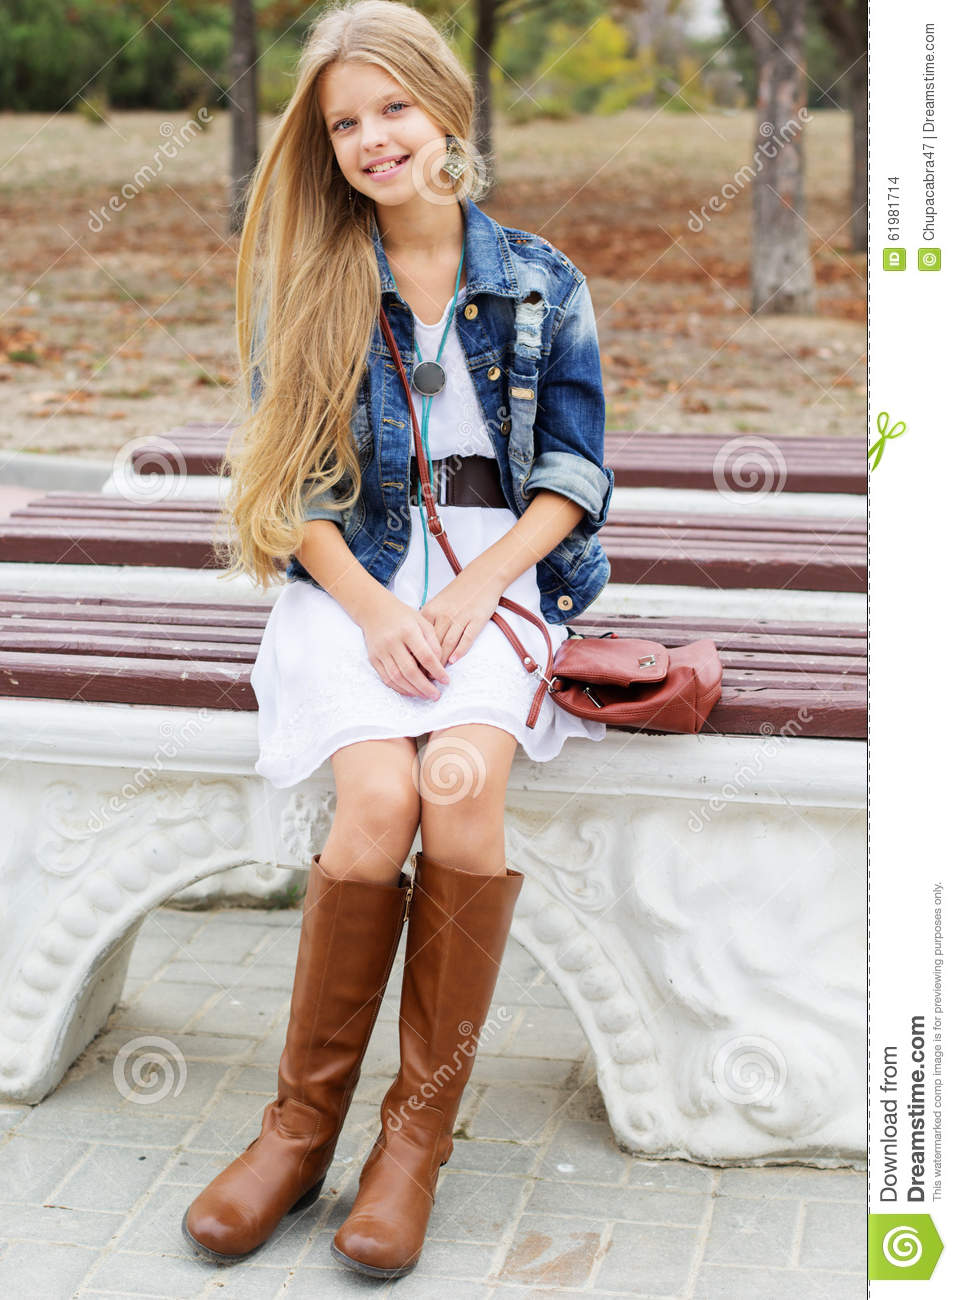 Girls Boots Dress